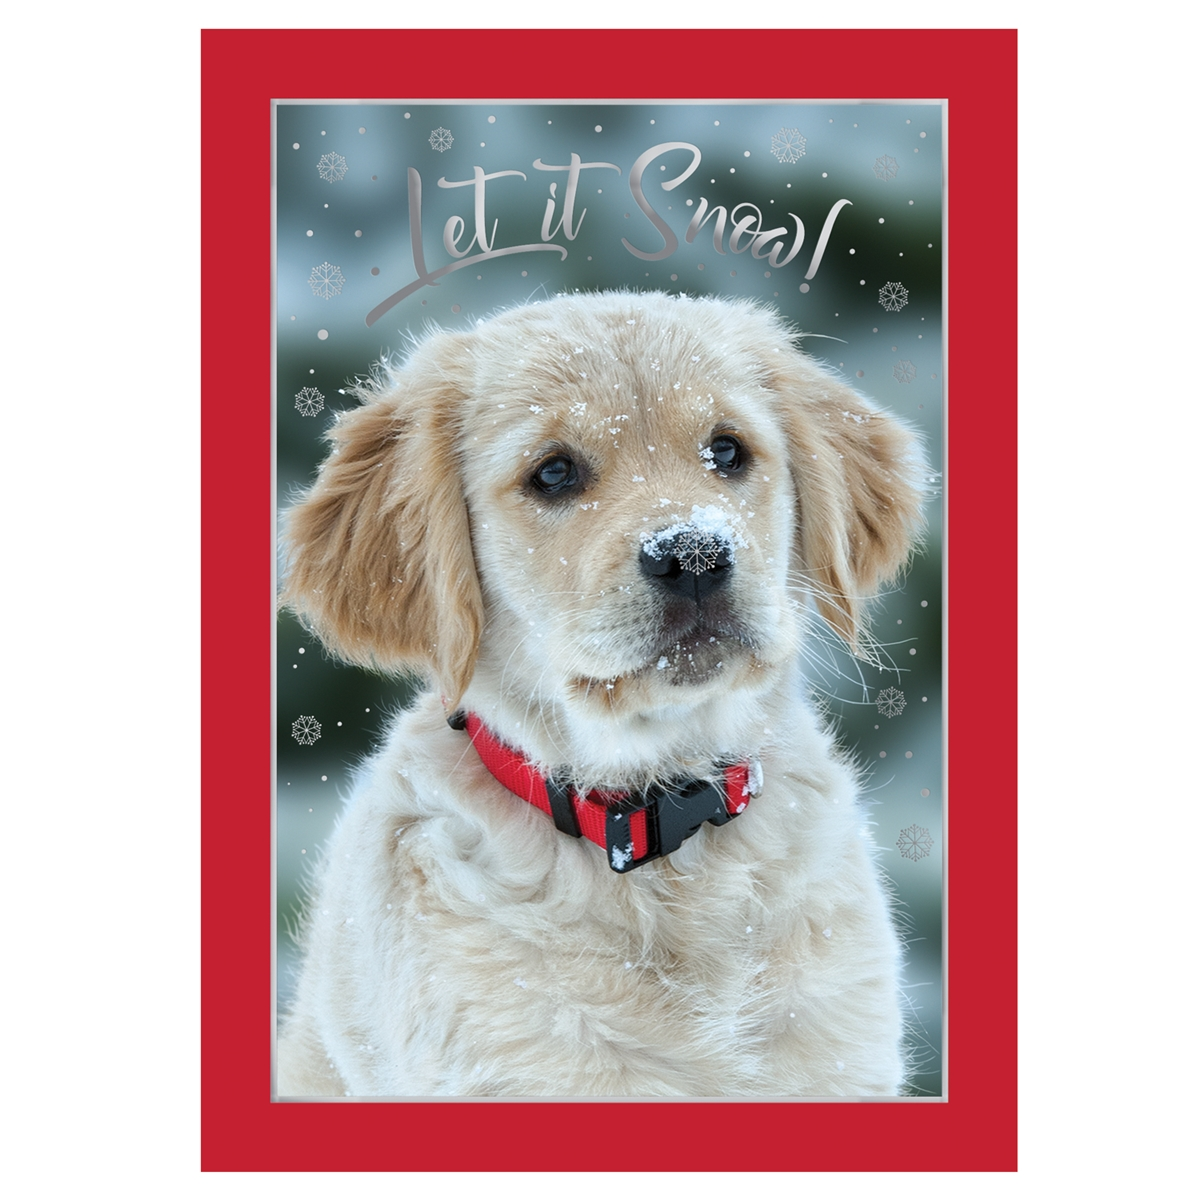 Golden Retriever Puppy in Snow Card